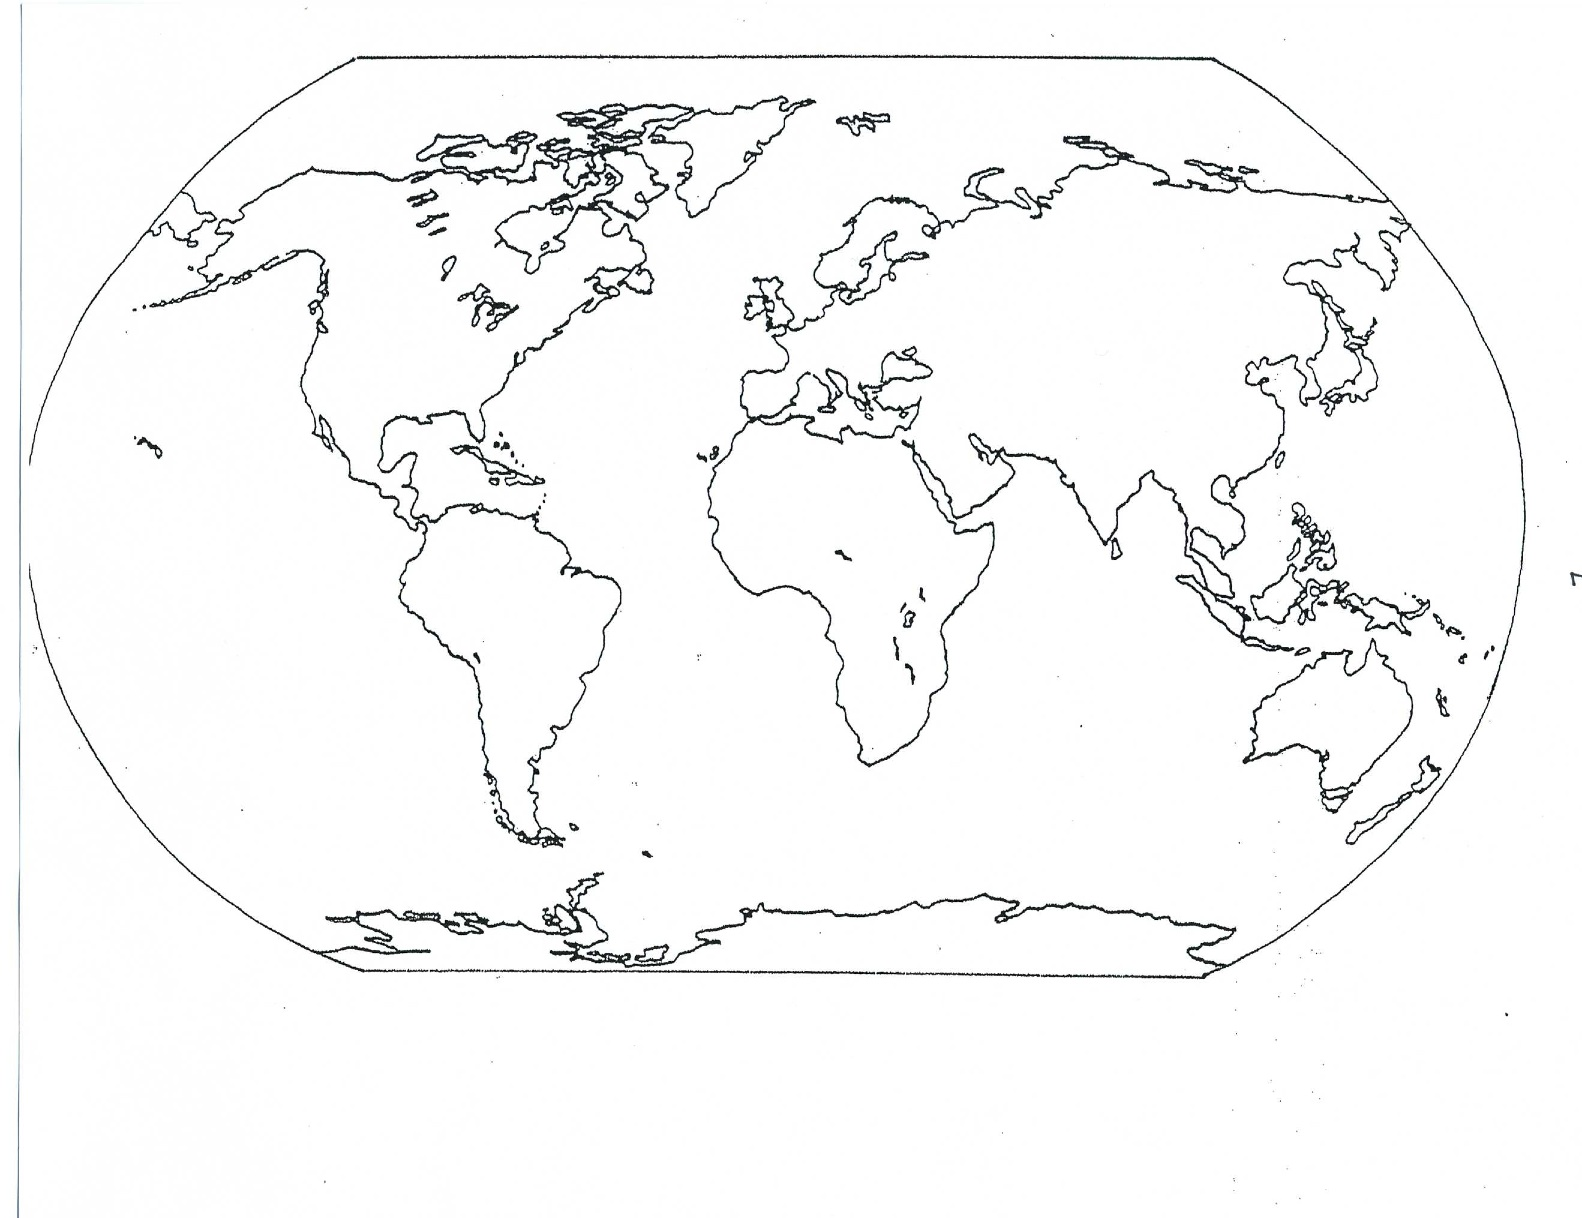 Pz c blank world map thursday september 13 gumiabroncs Image collections